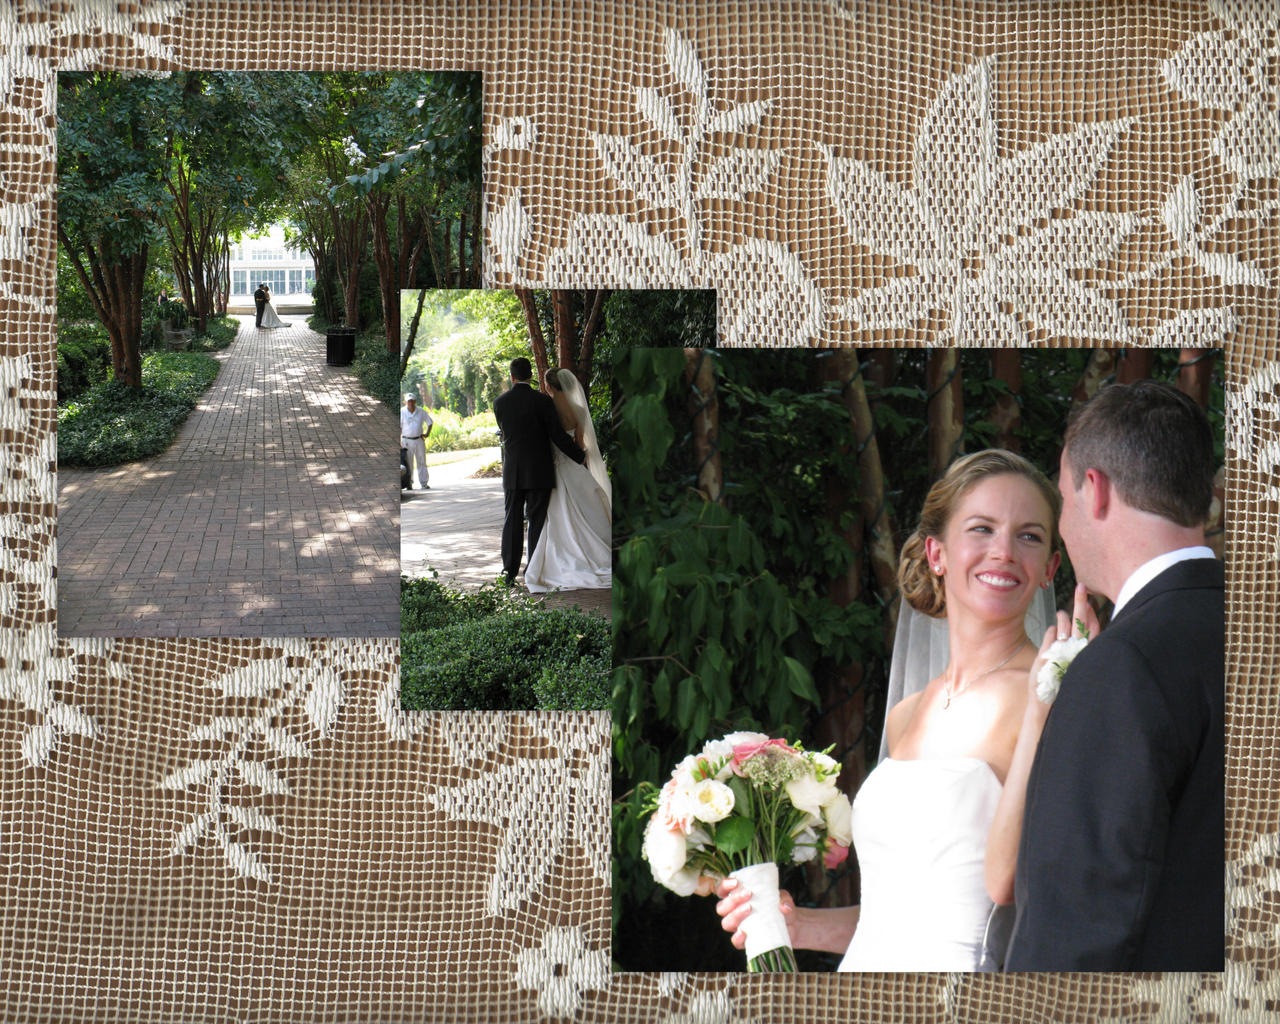 Wedding Collage by intouch